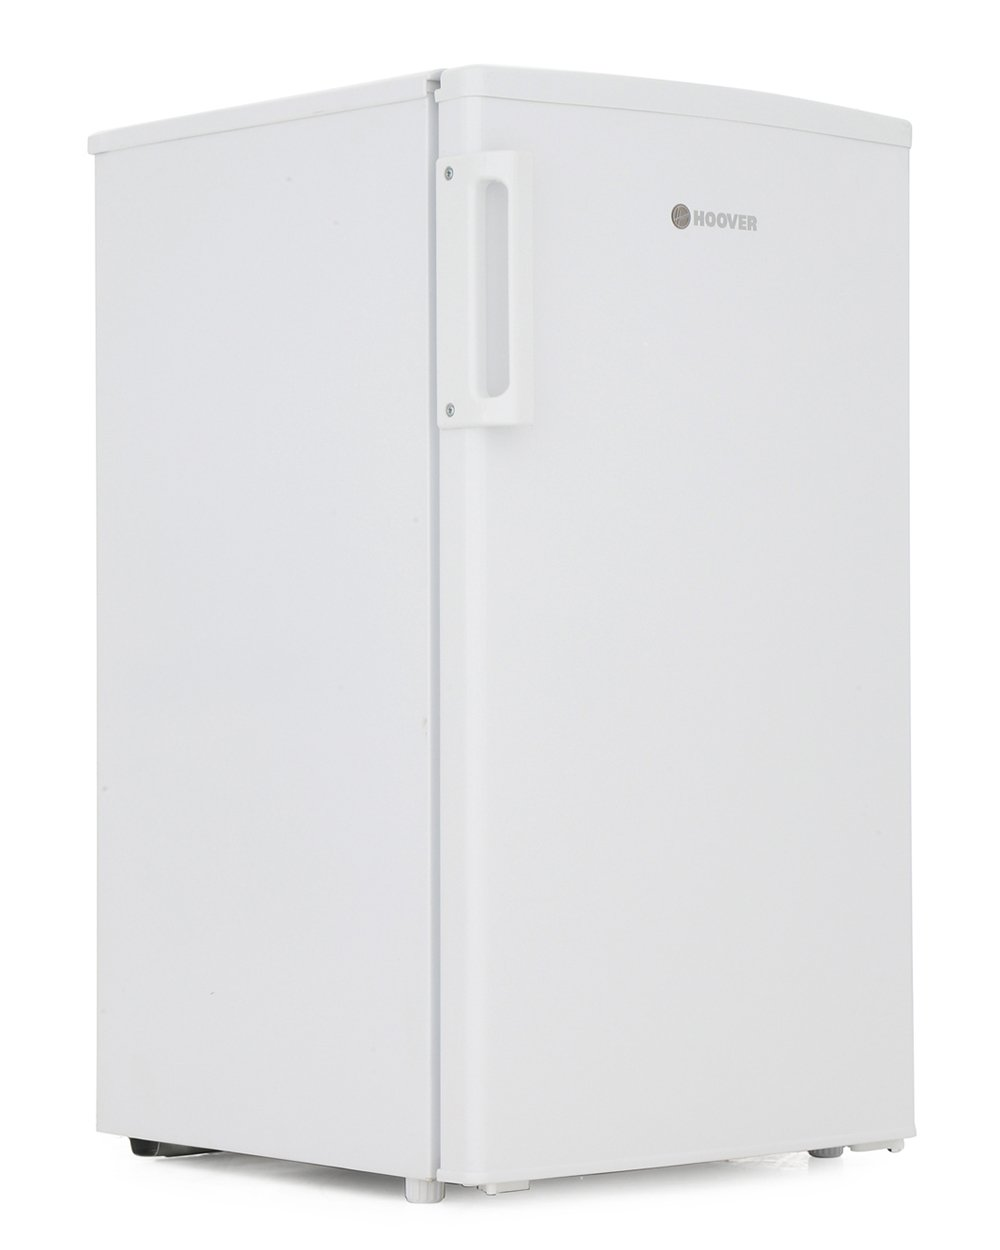 Hoover HTUP 130 WK Static Freezer